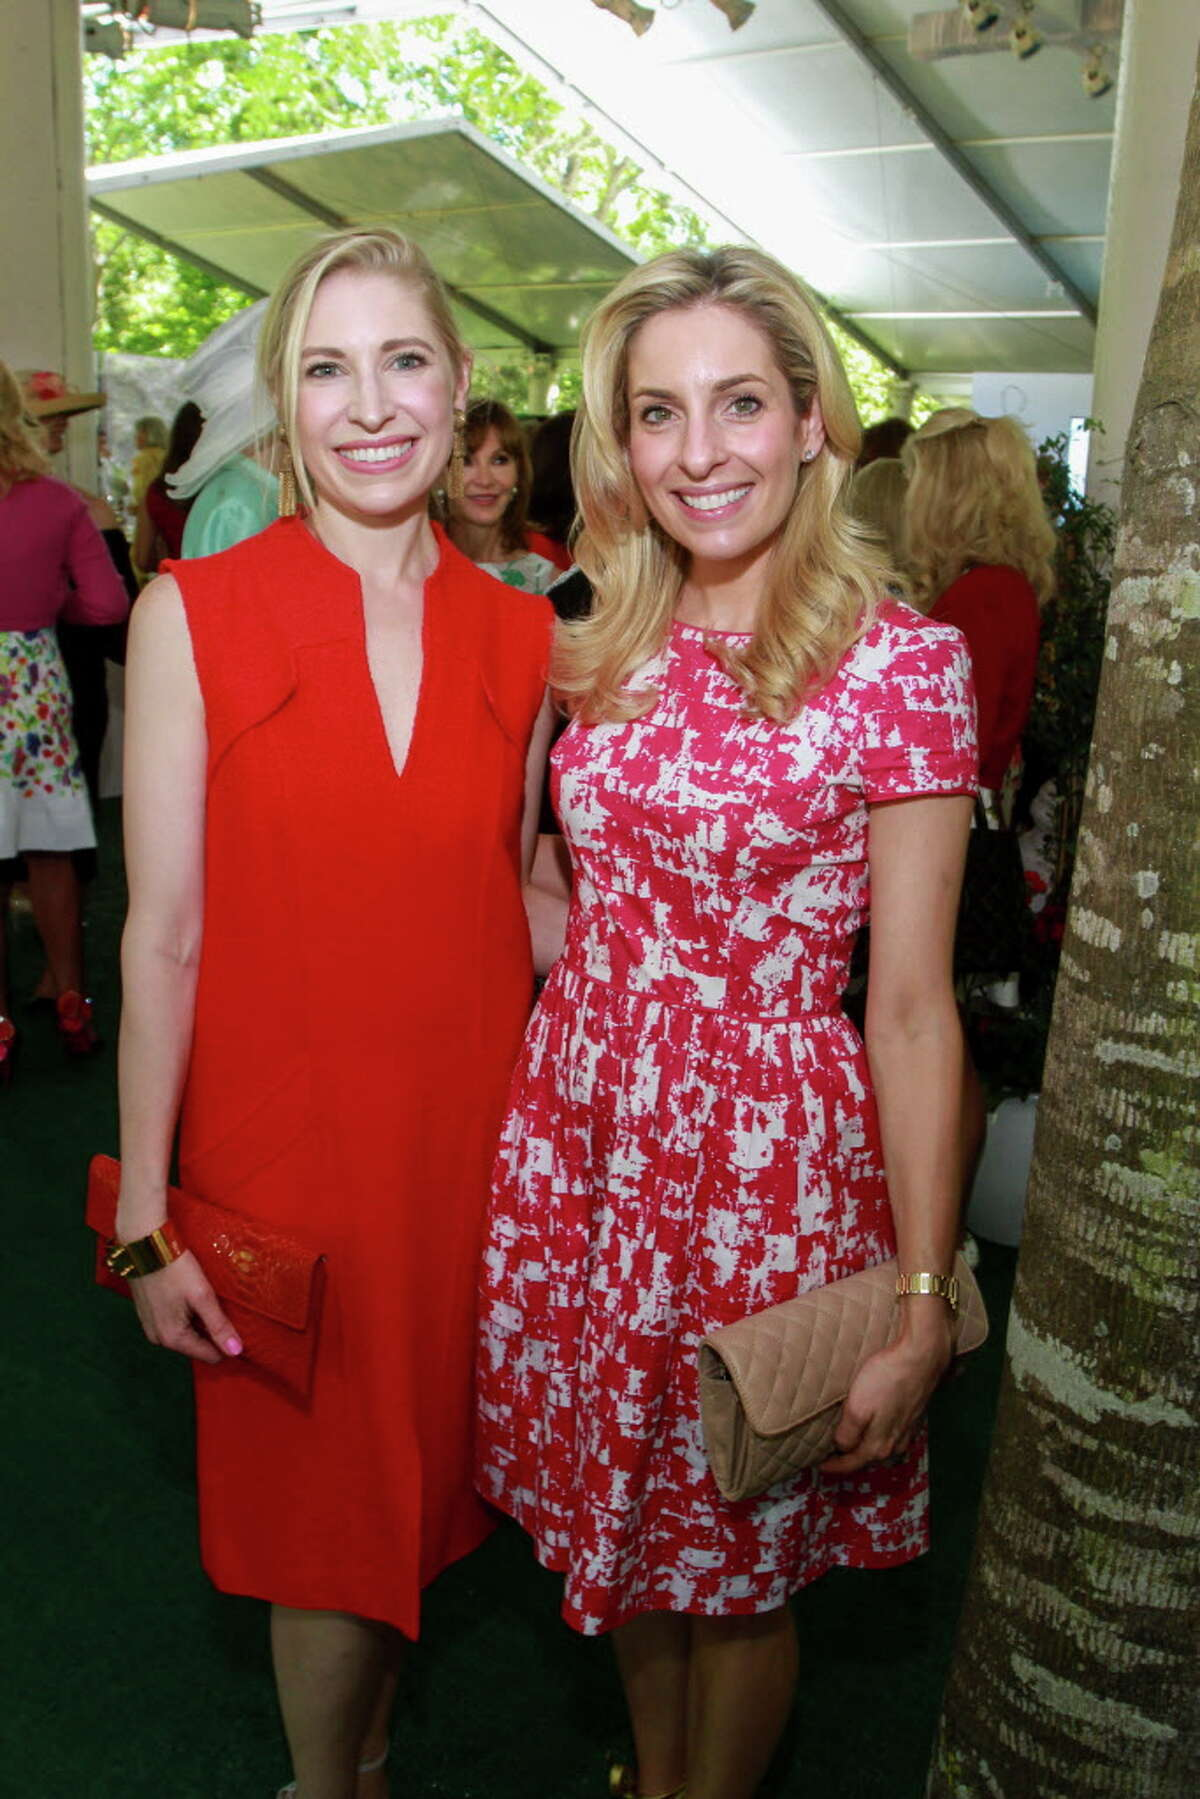 Isabel David and Luvi Wheelock at the Museum of Fine Arts Bayou Bend Fashion Show and Luncheon. (For the Chronicle/Gary Fountain, March 31, 2017)